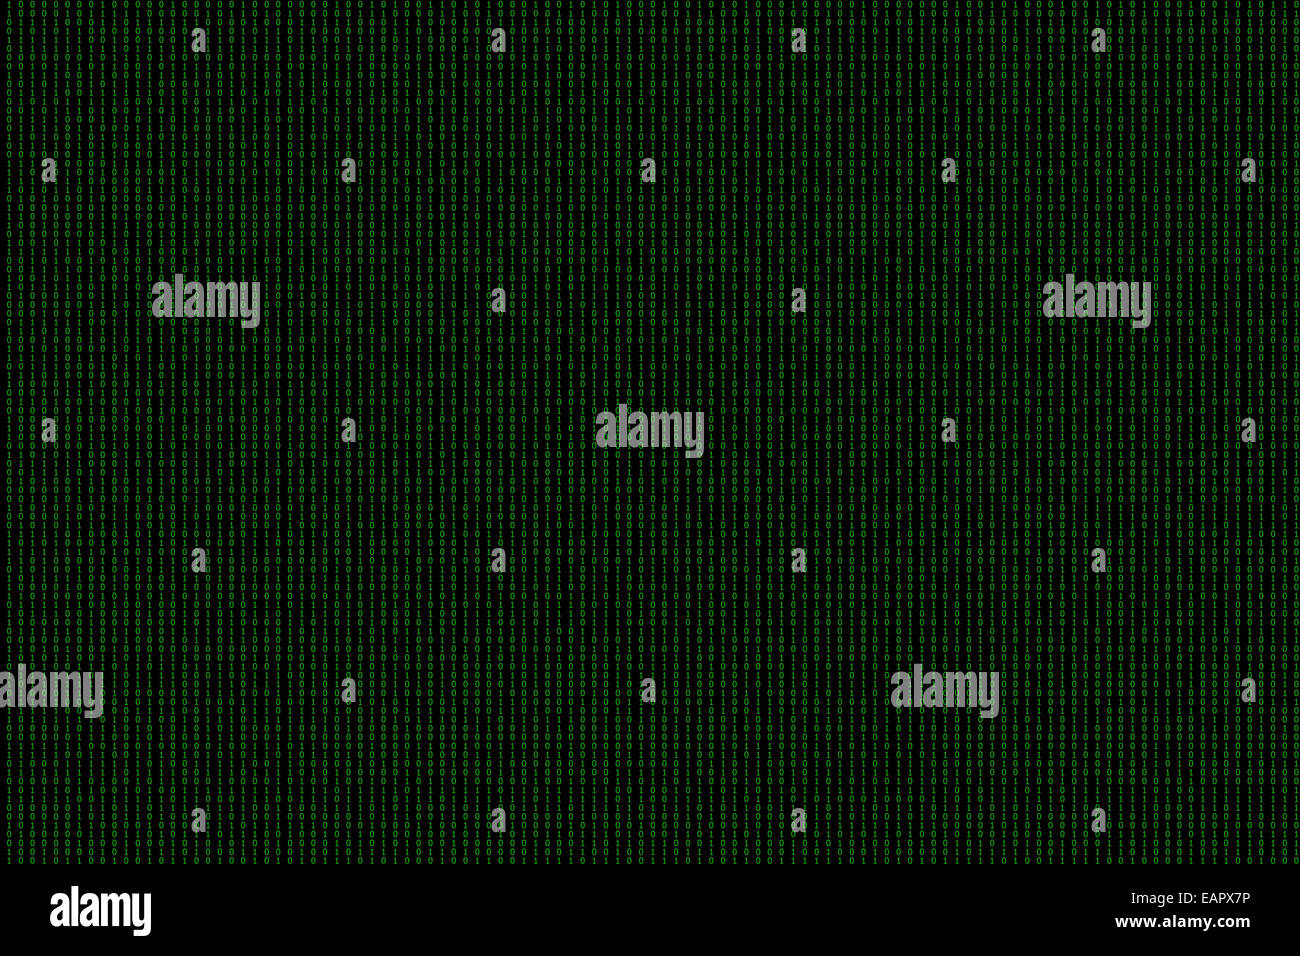 Binary computer code green background. - Stock Image